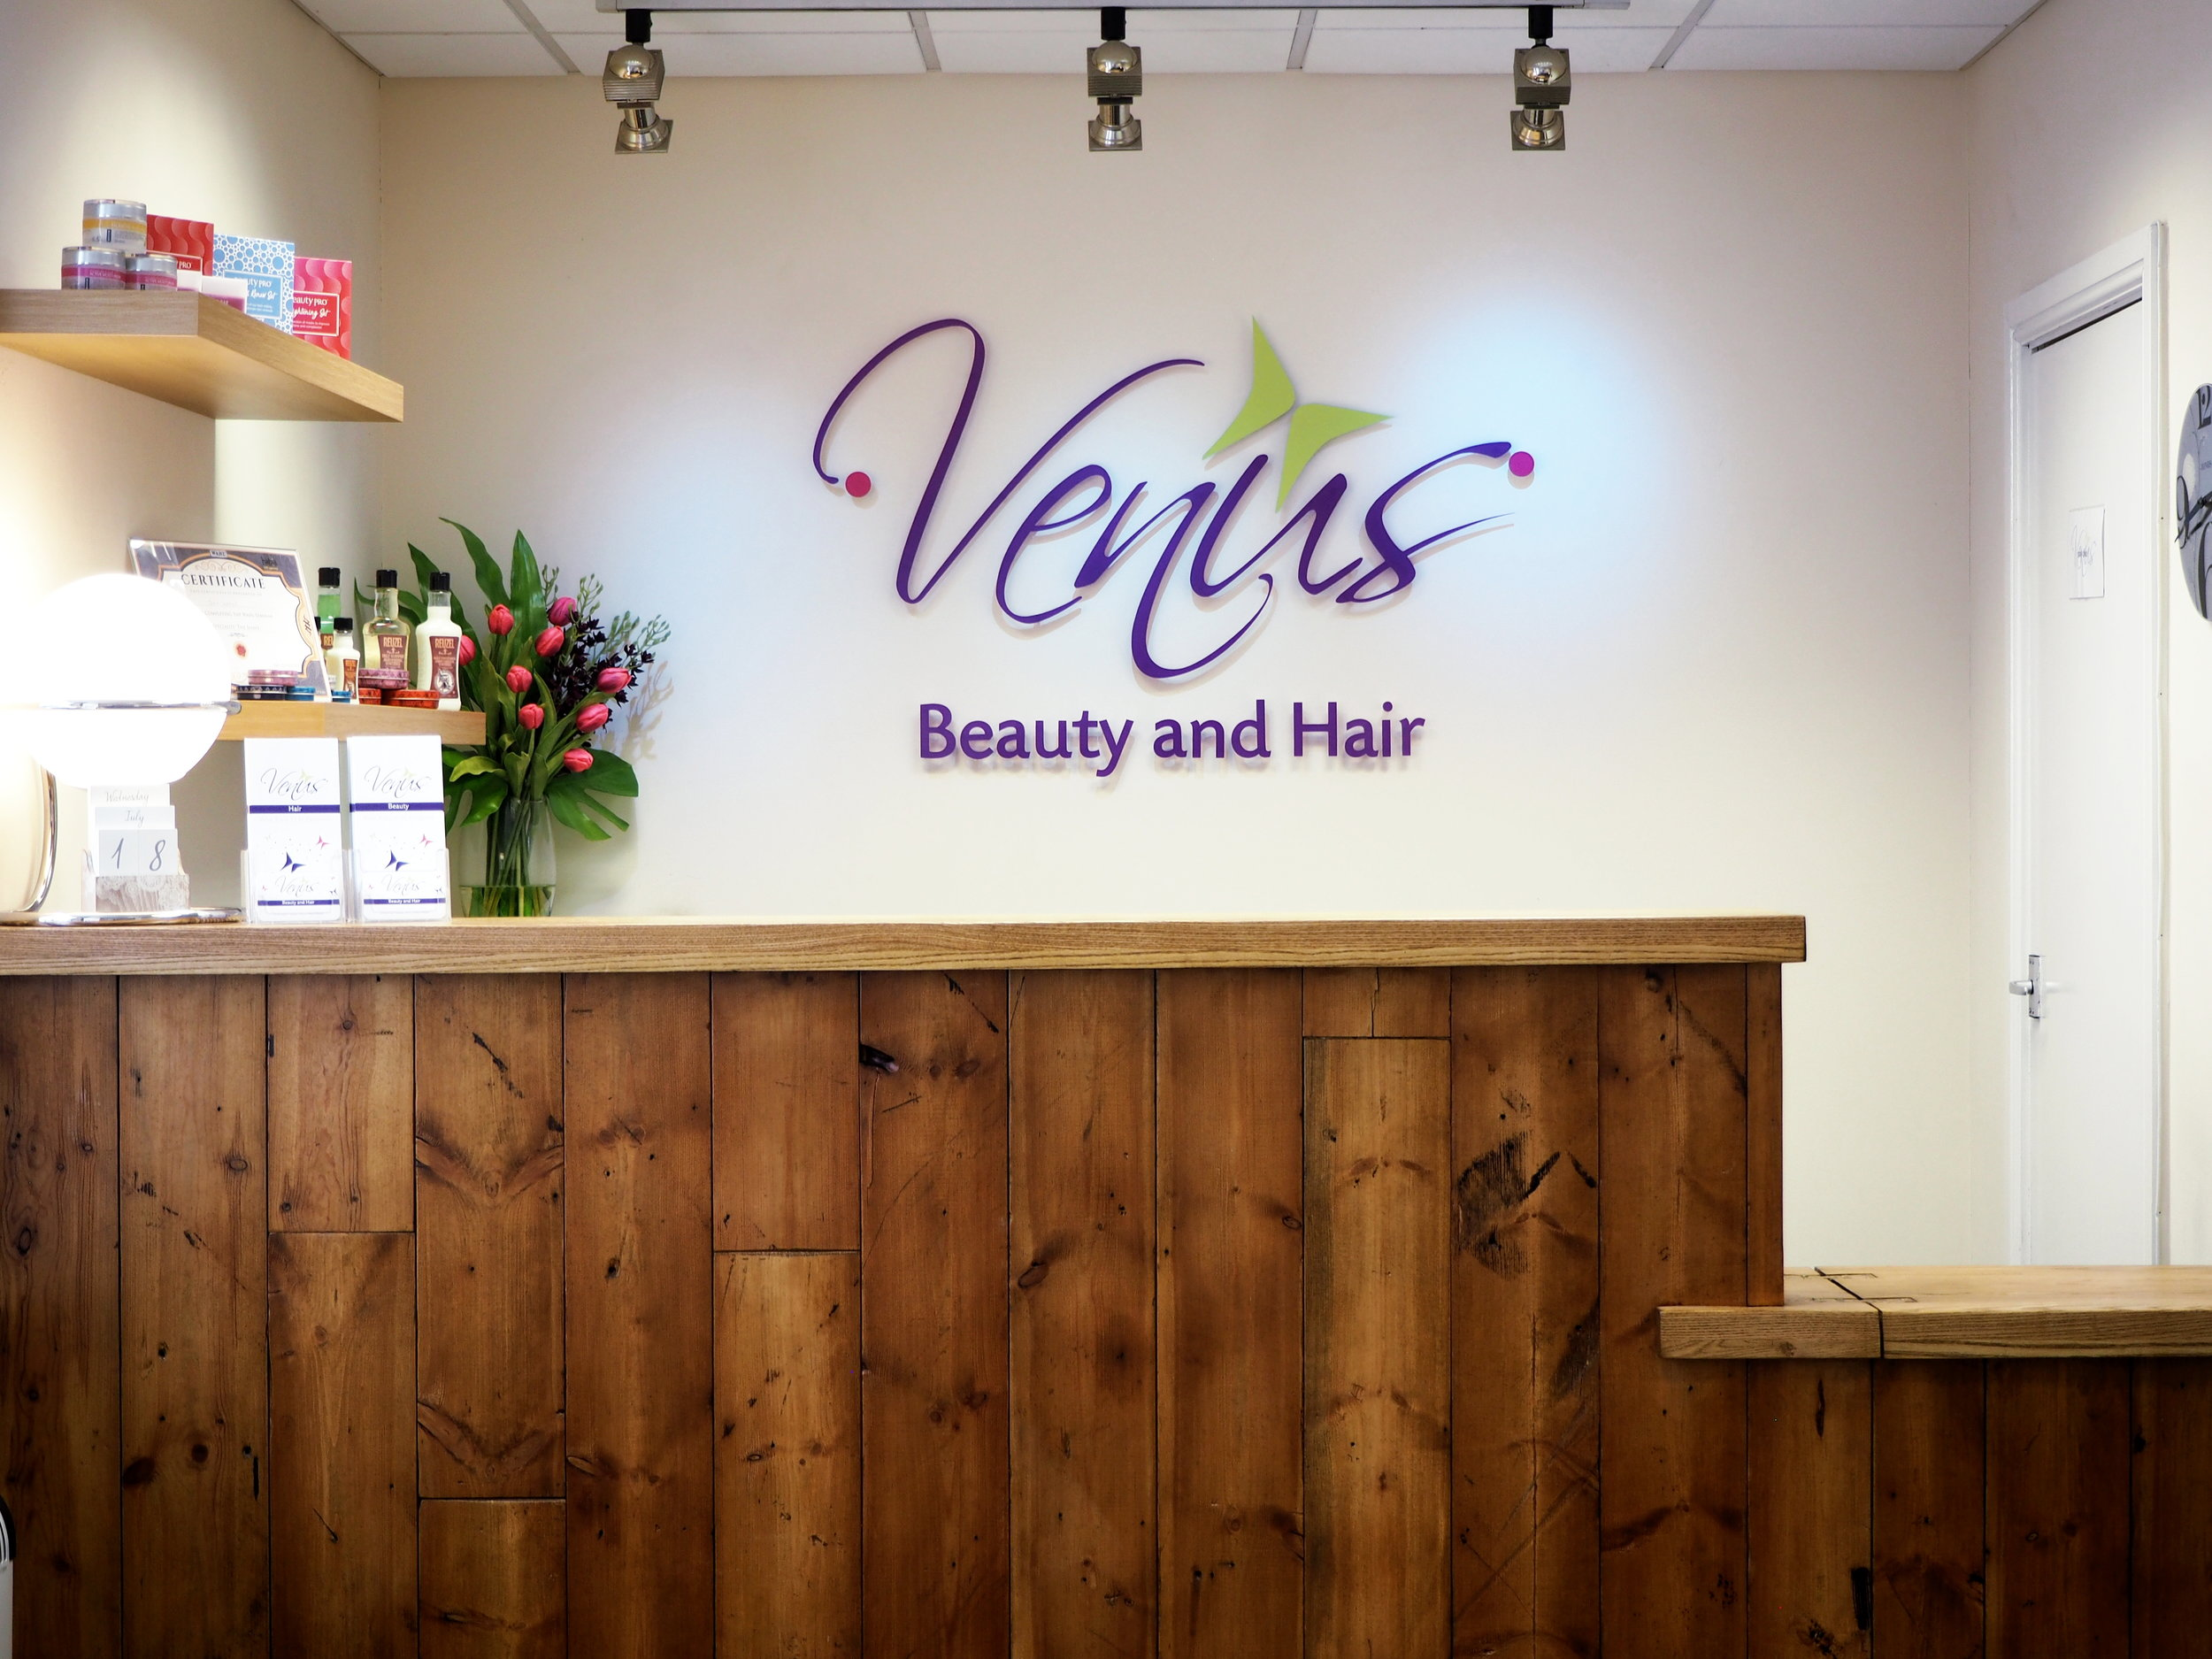 Venus-Beauty-Hair-Salon-Devon-Tavistock-Beauty-Therapists-Hair-Stylists-Reception-Careers-Hire-Jobs-Available.JPG